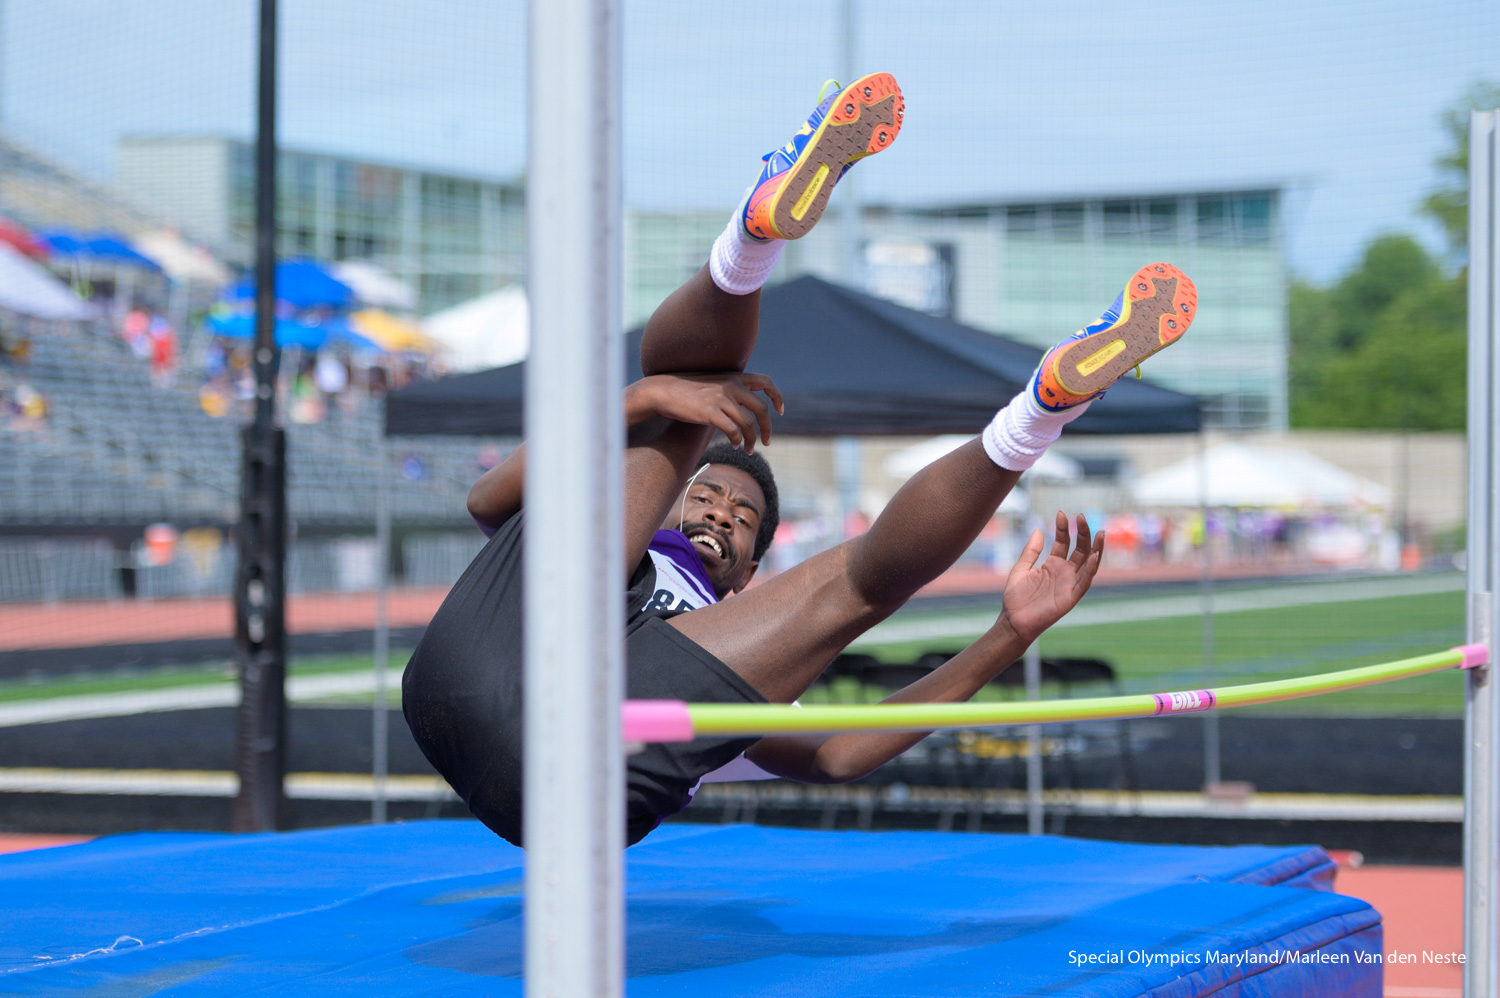 High jumper successfully completes a challenging jump at Unitas Stadium , Towson University, MD on Sunday June 9, 2019.